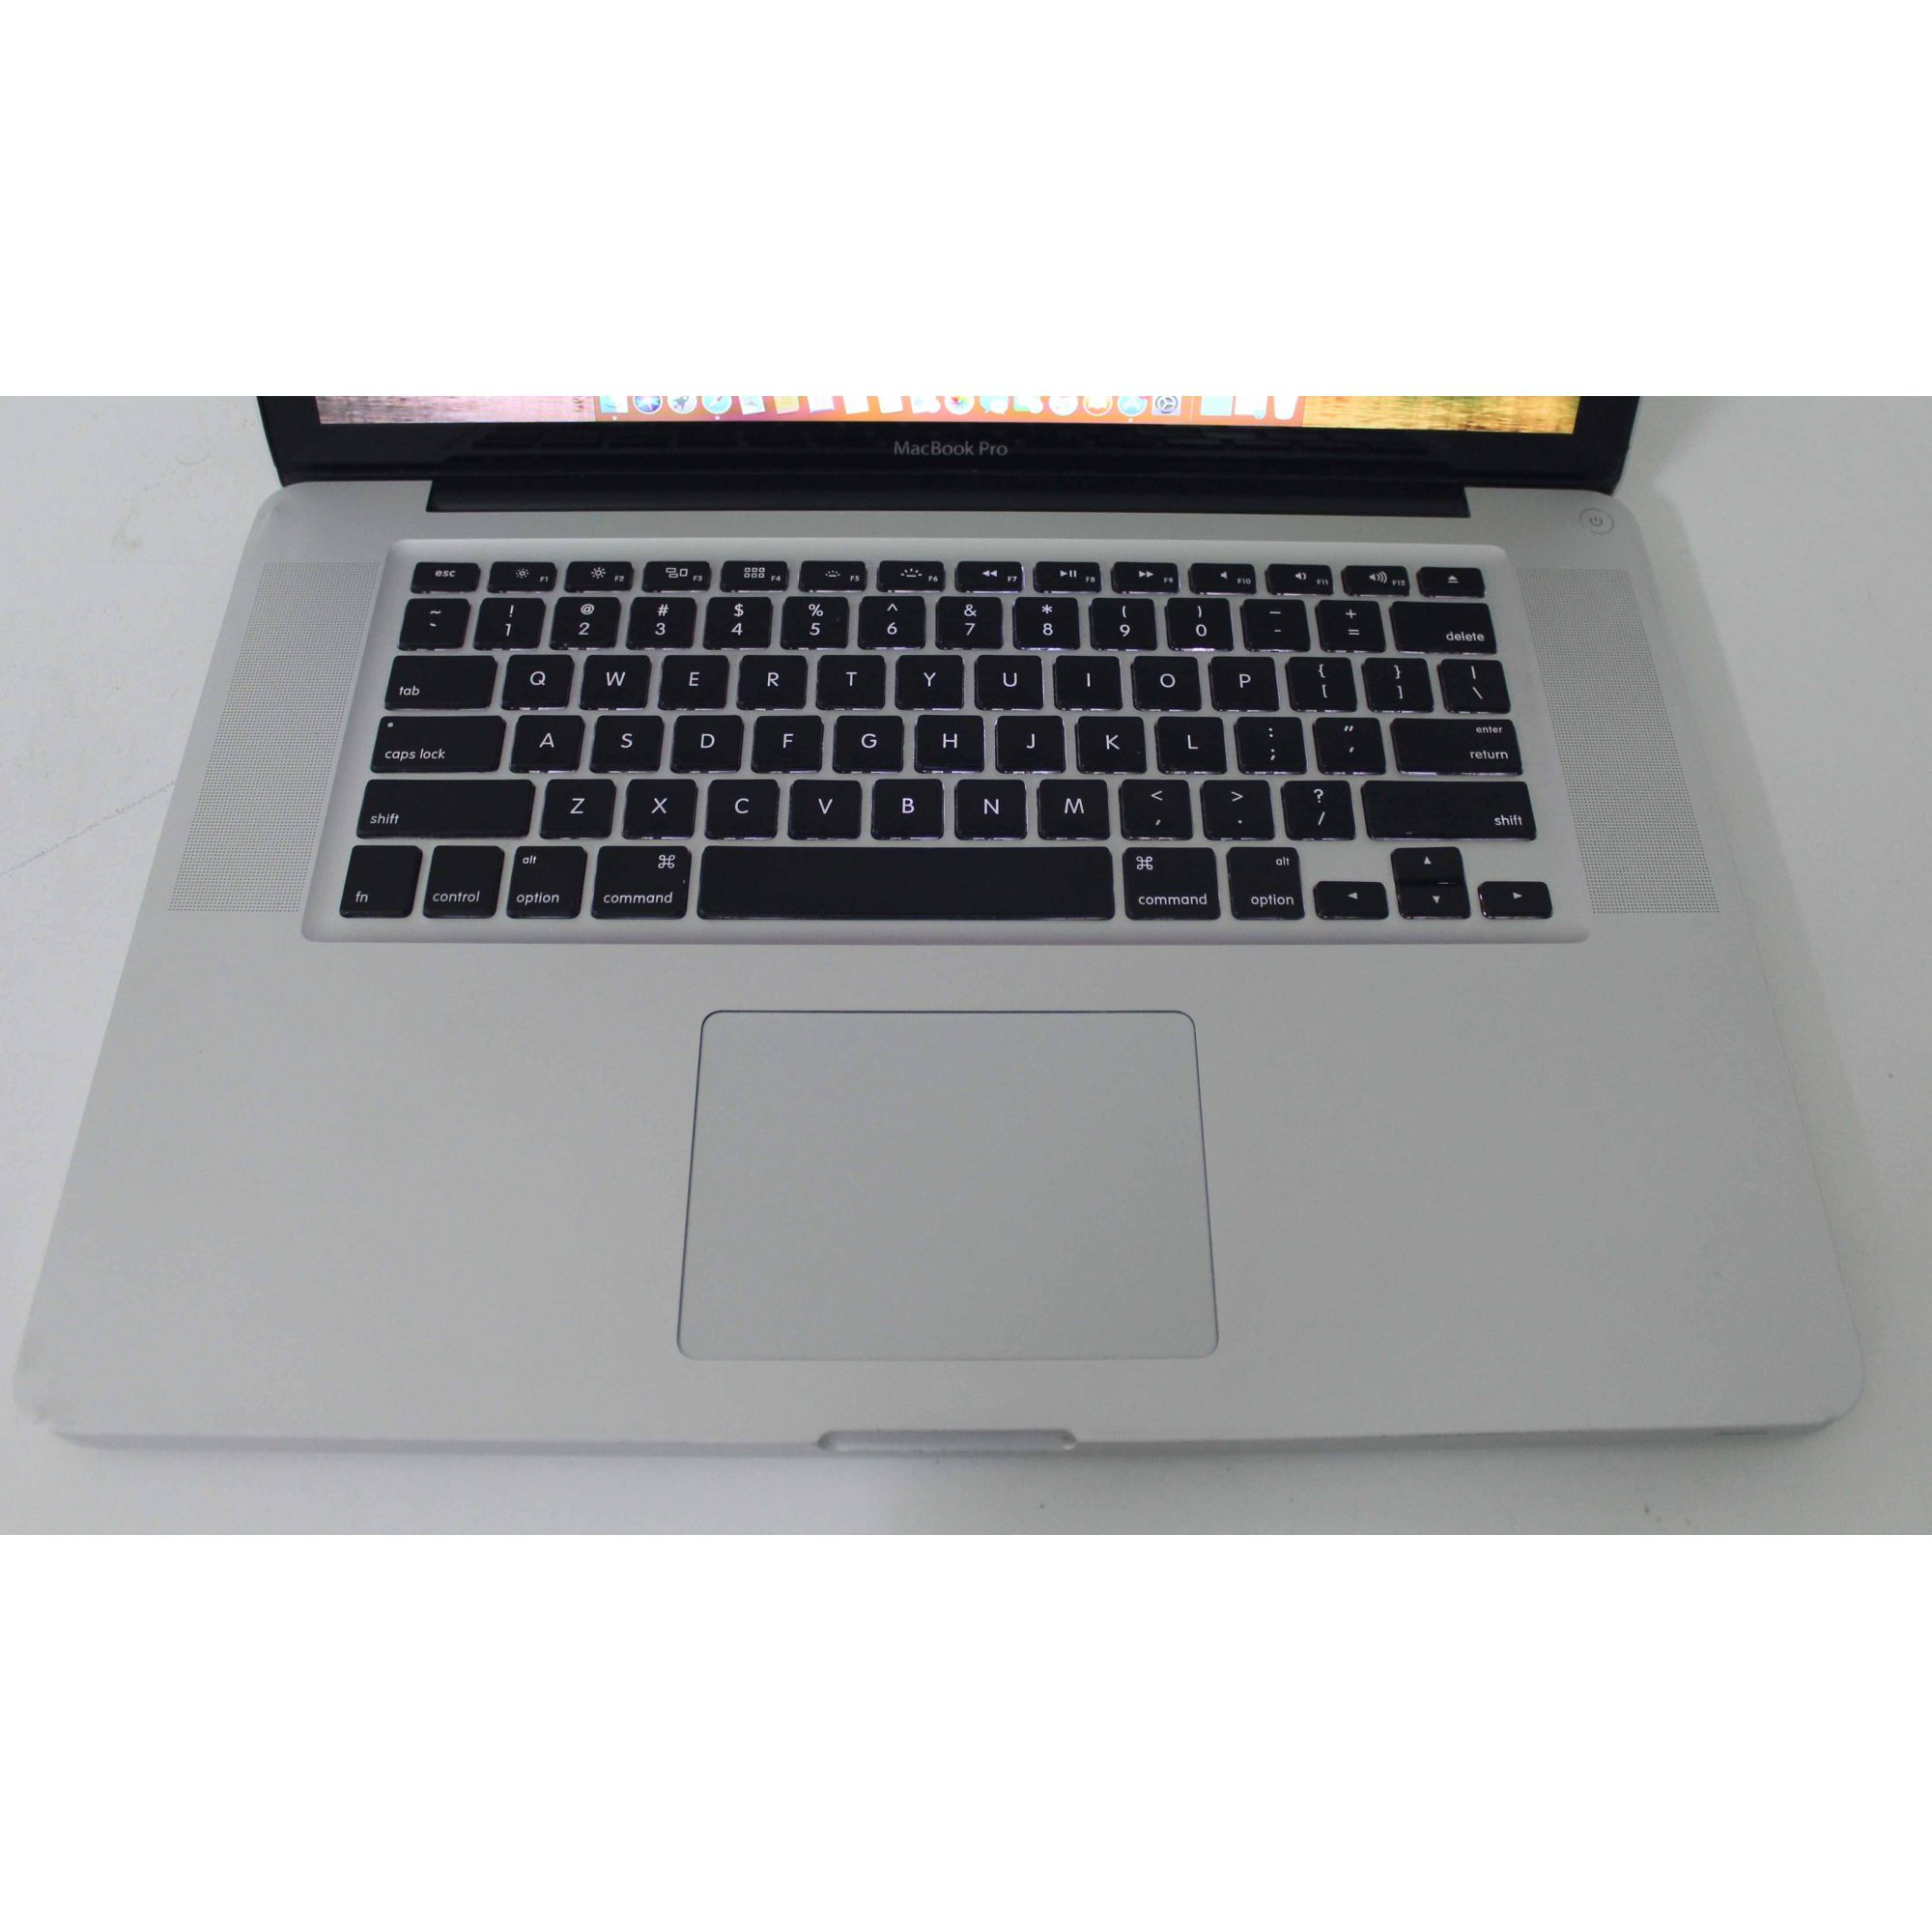 "Macbook Pro MD318LL/A 15.4"" Intel Core i7 2.2GHz 8Gb SSD-480GB"